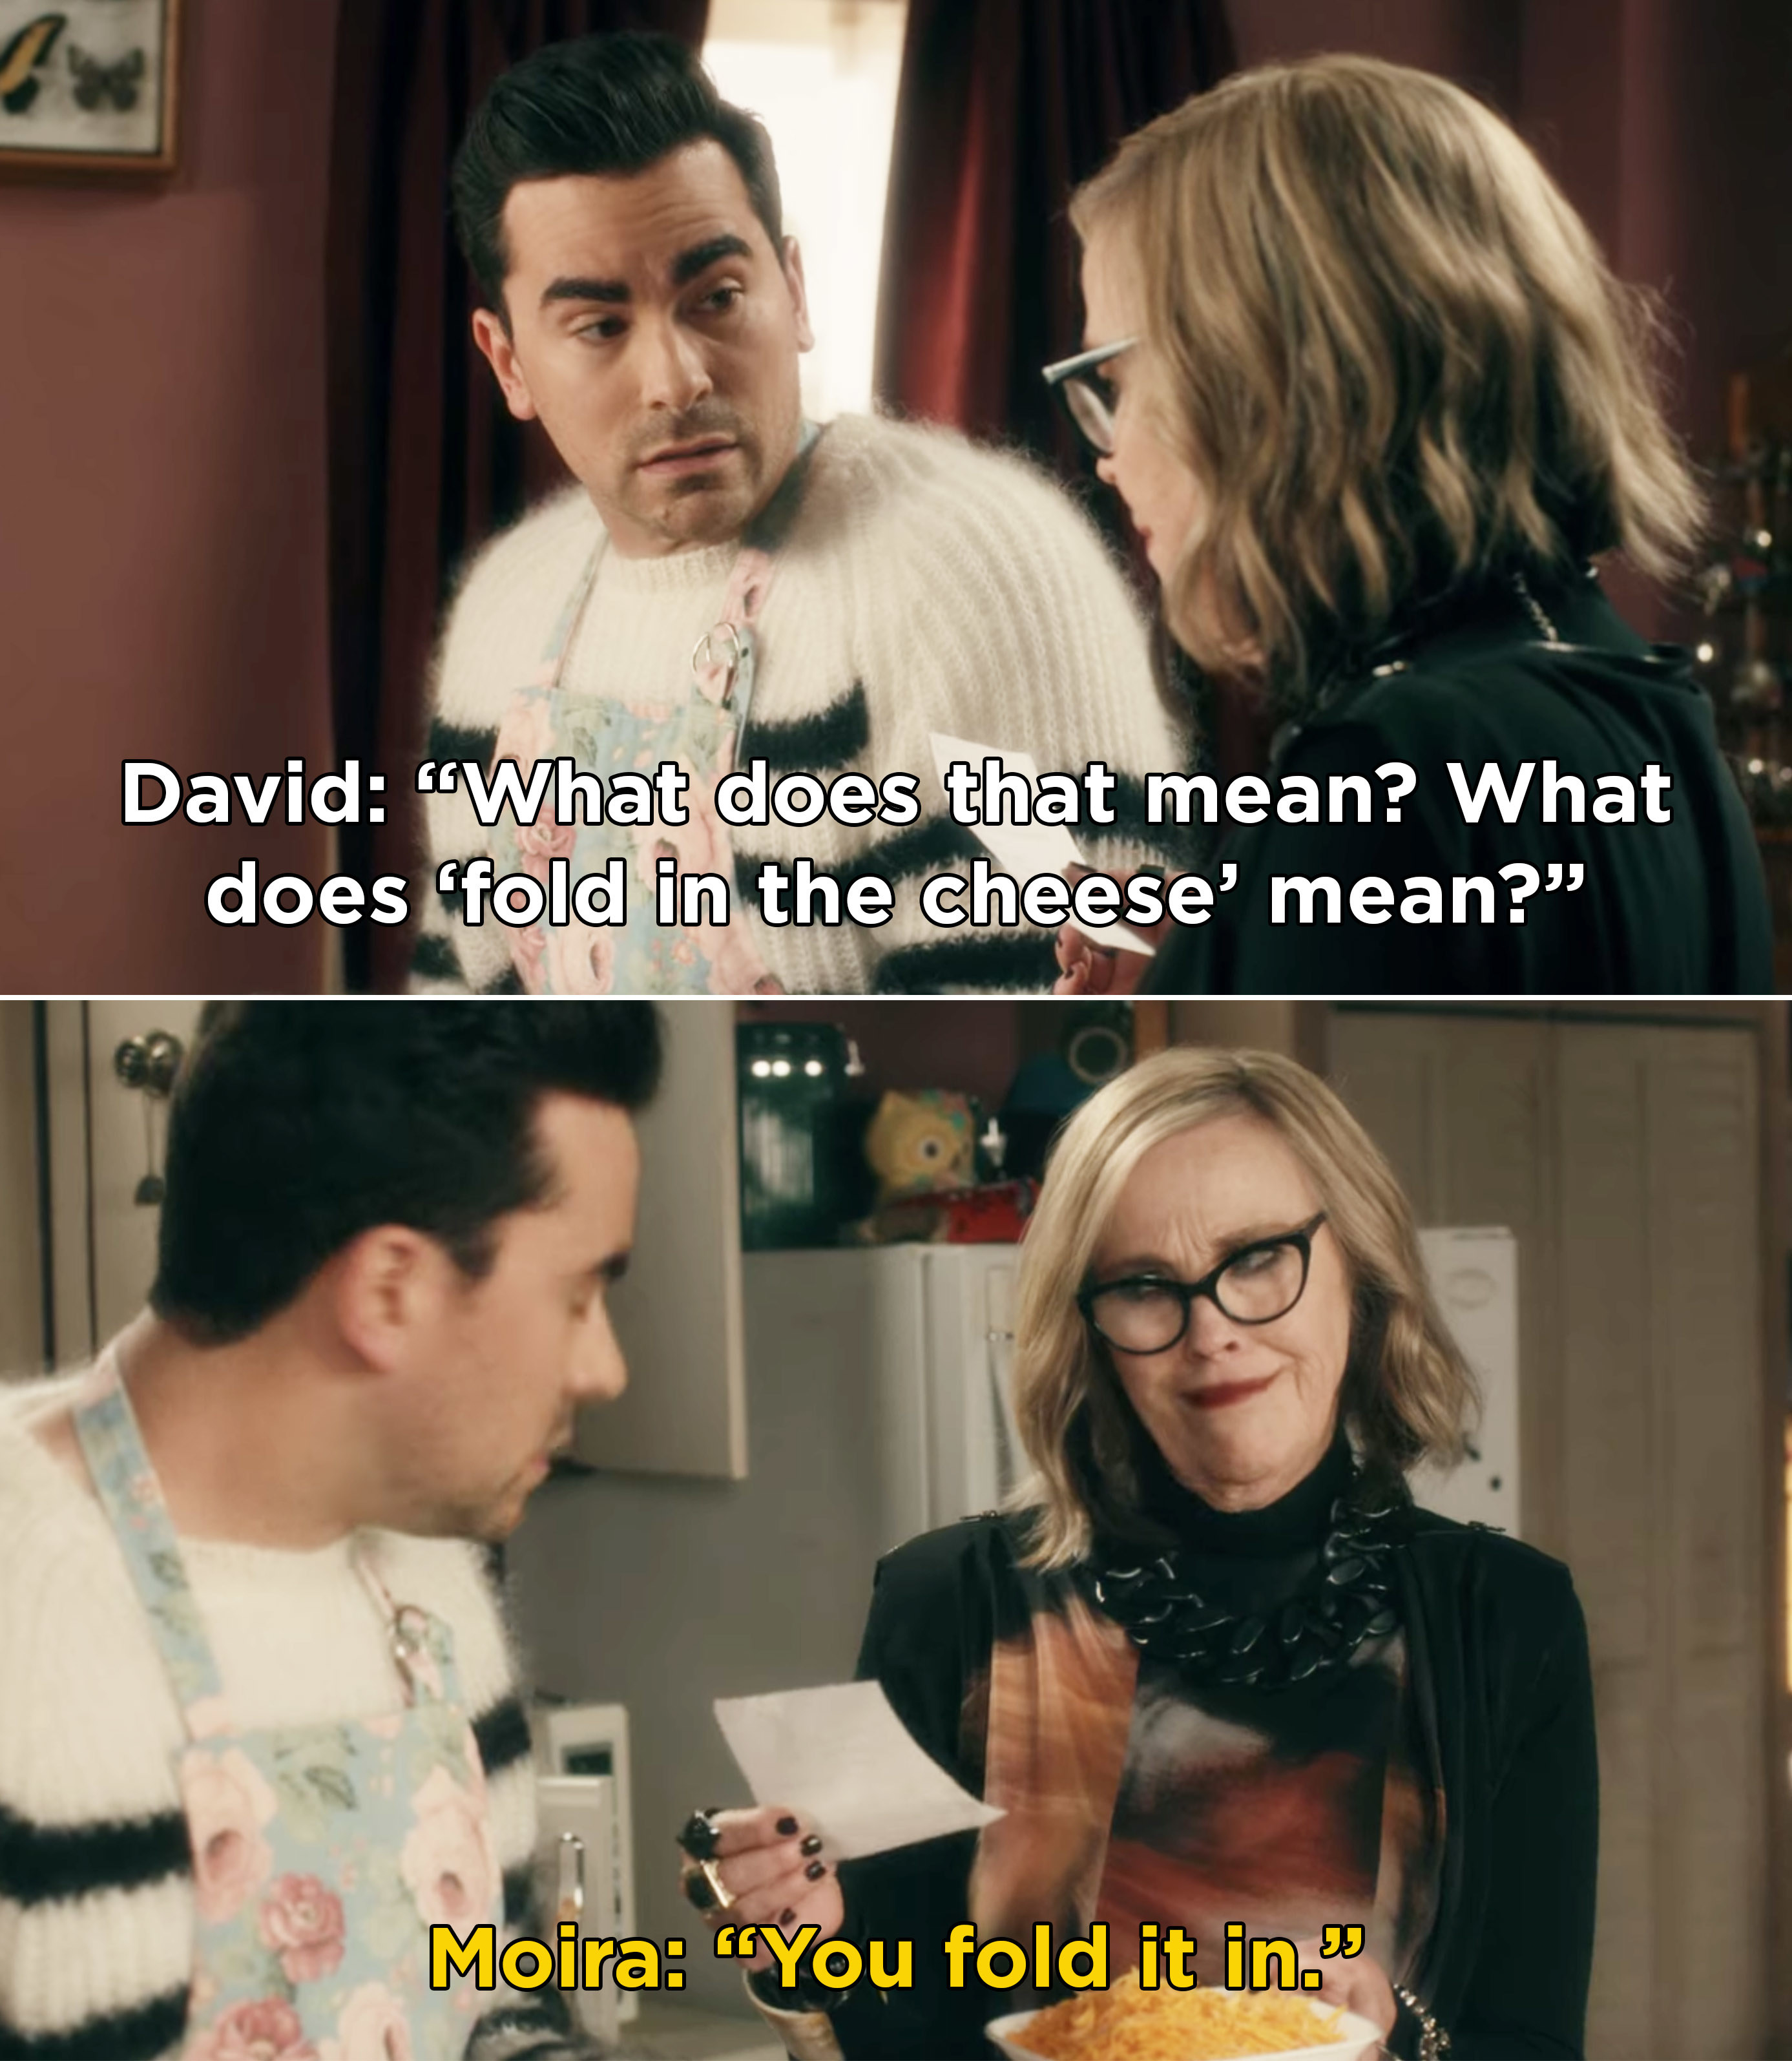 """David asking Moira what """"fold in the cheese"""" means and Moira responding, """"You fold it in"""""""